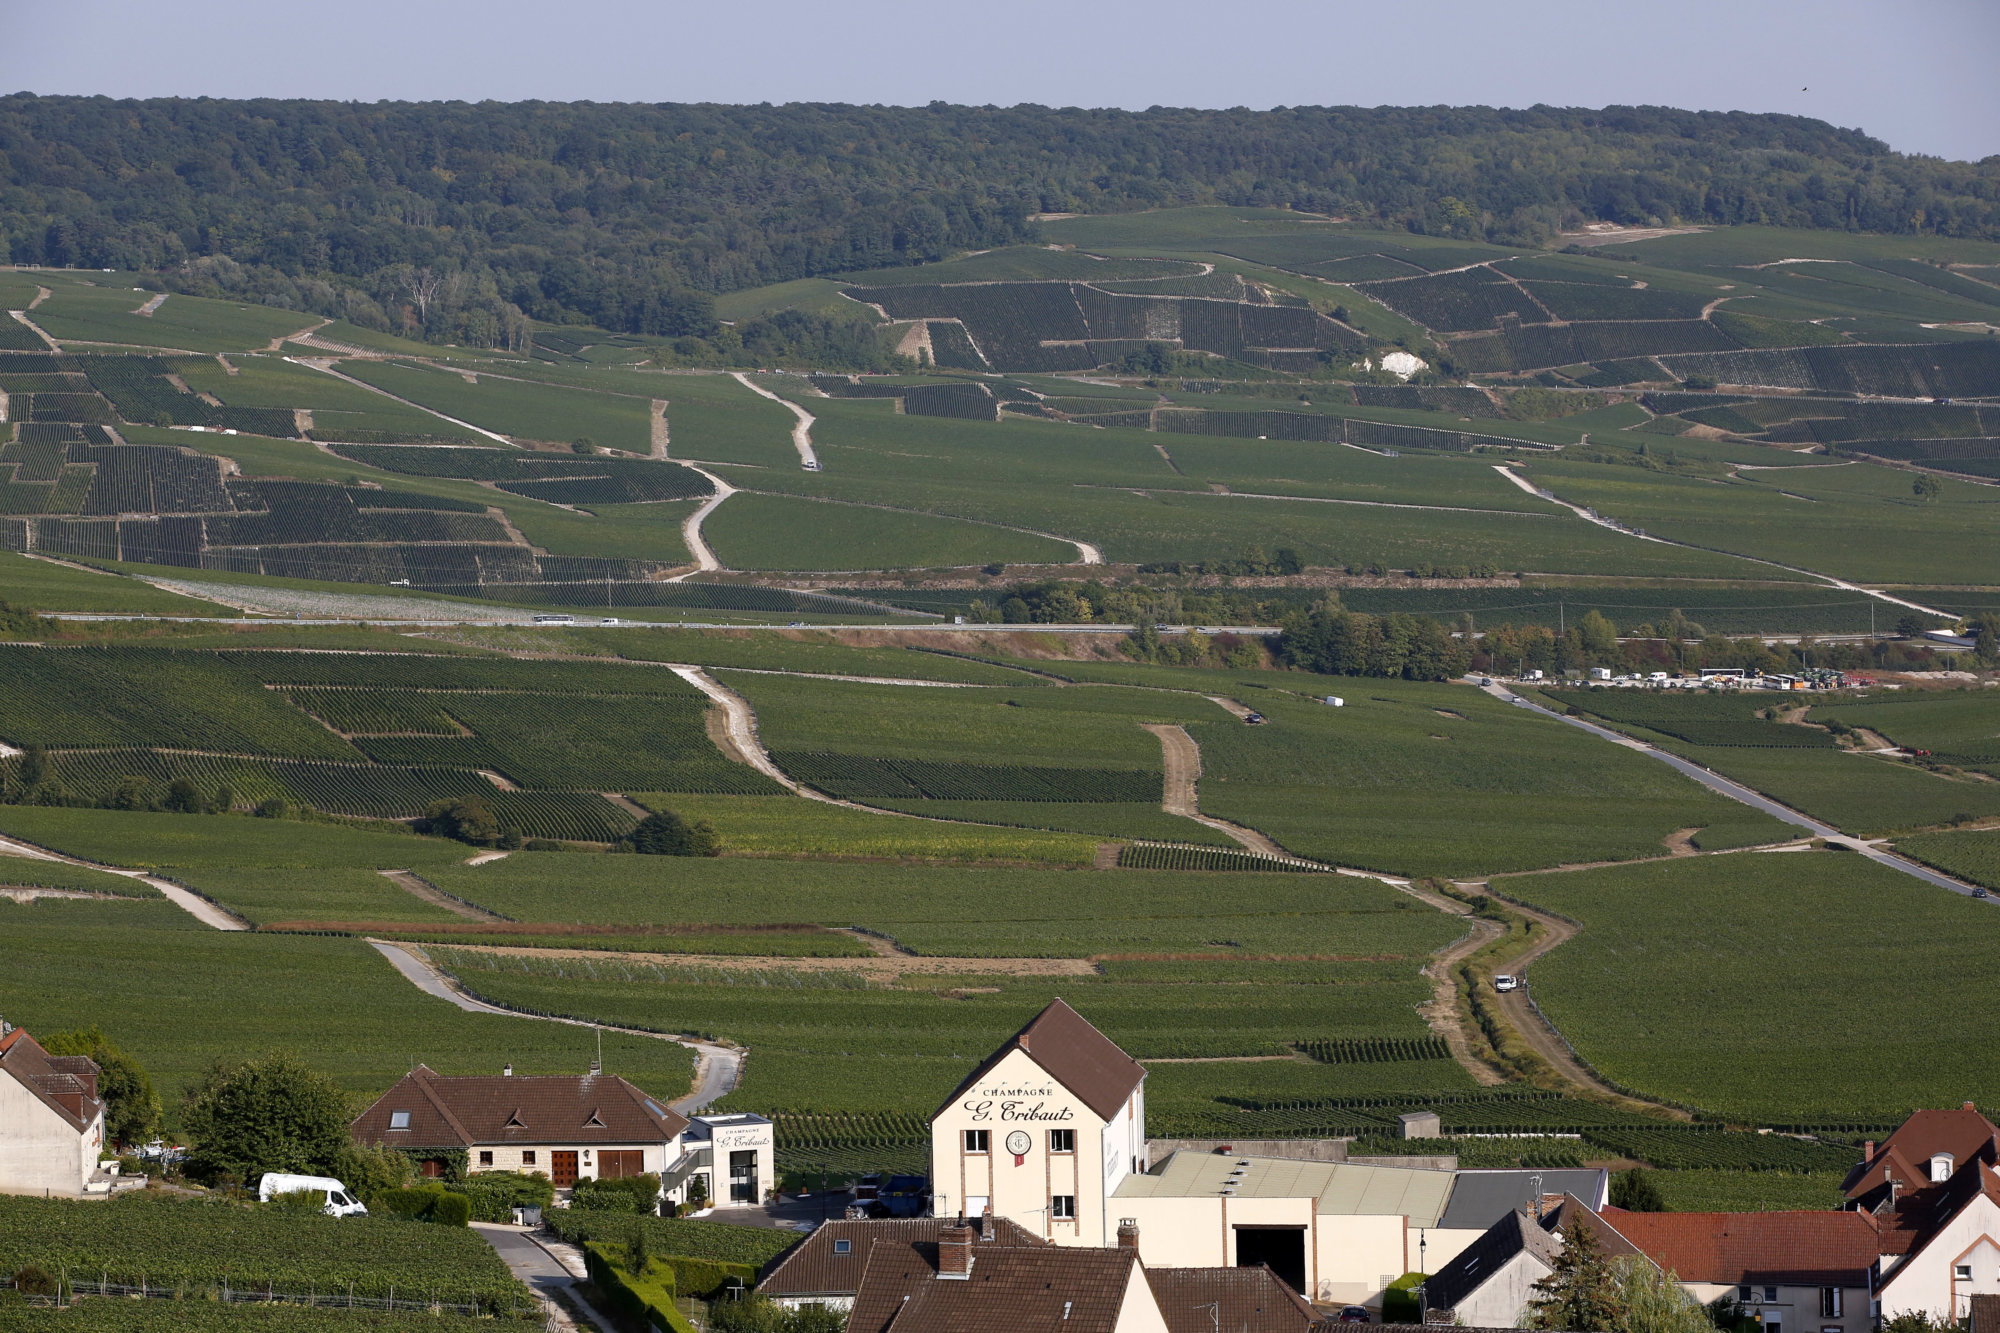 In this photo taken on Tuesday, Aug. 28, 2018 a view of the Champagne vineyards in the Champagne region, in Hautvillers, eastern France. Temperatures have risen 1.2 degrees Celsius (2.16 F) in 30 years, and pickers are scrambling to bring in yet another early harvest. The specter of climate change is haunting the vineyards of France, and its creeping effects, including chaotic weather, are becoming the new normal. (AP Photo/Thibault Camus)